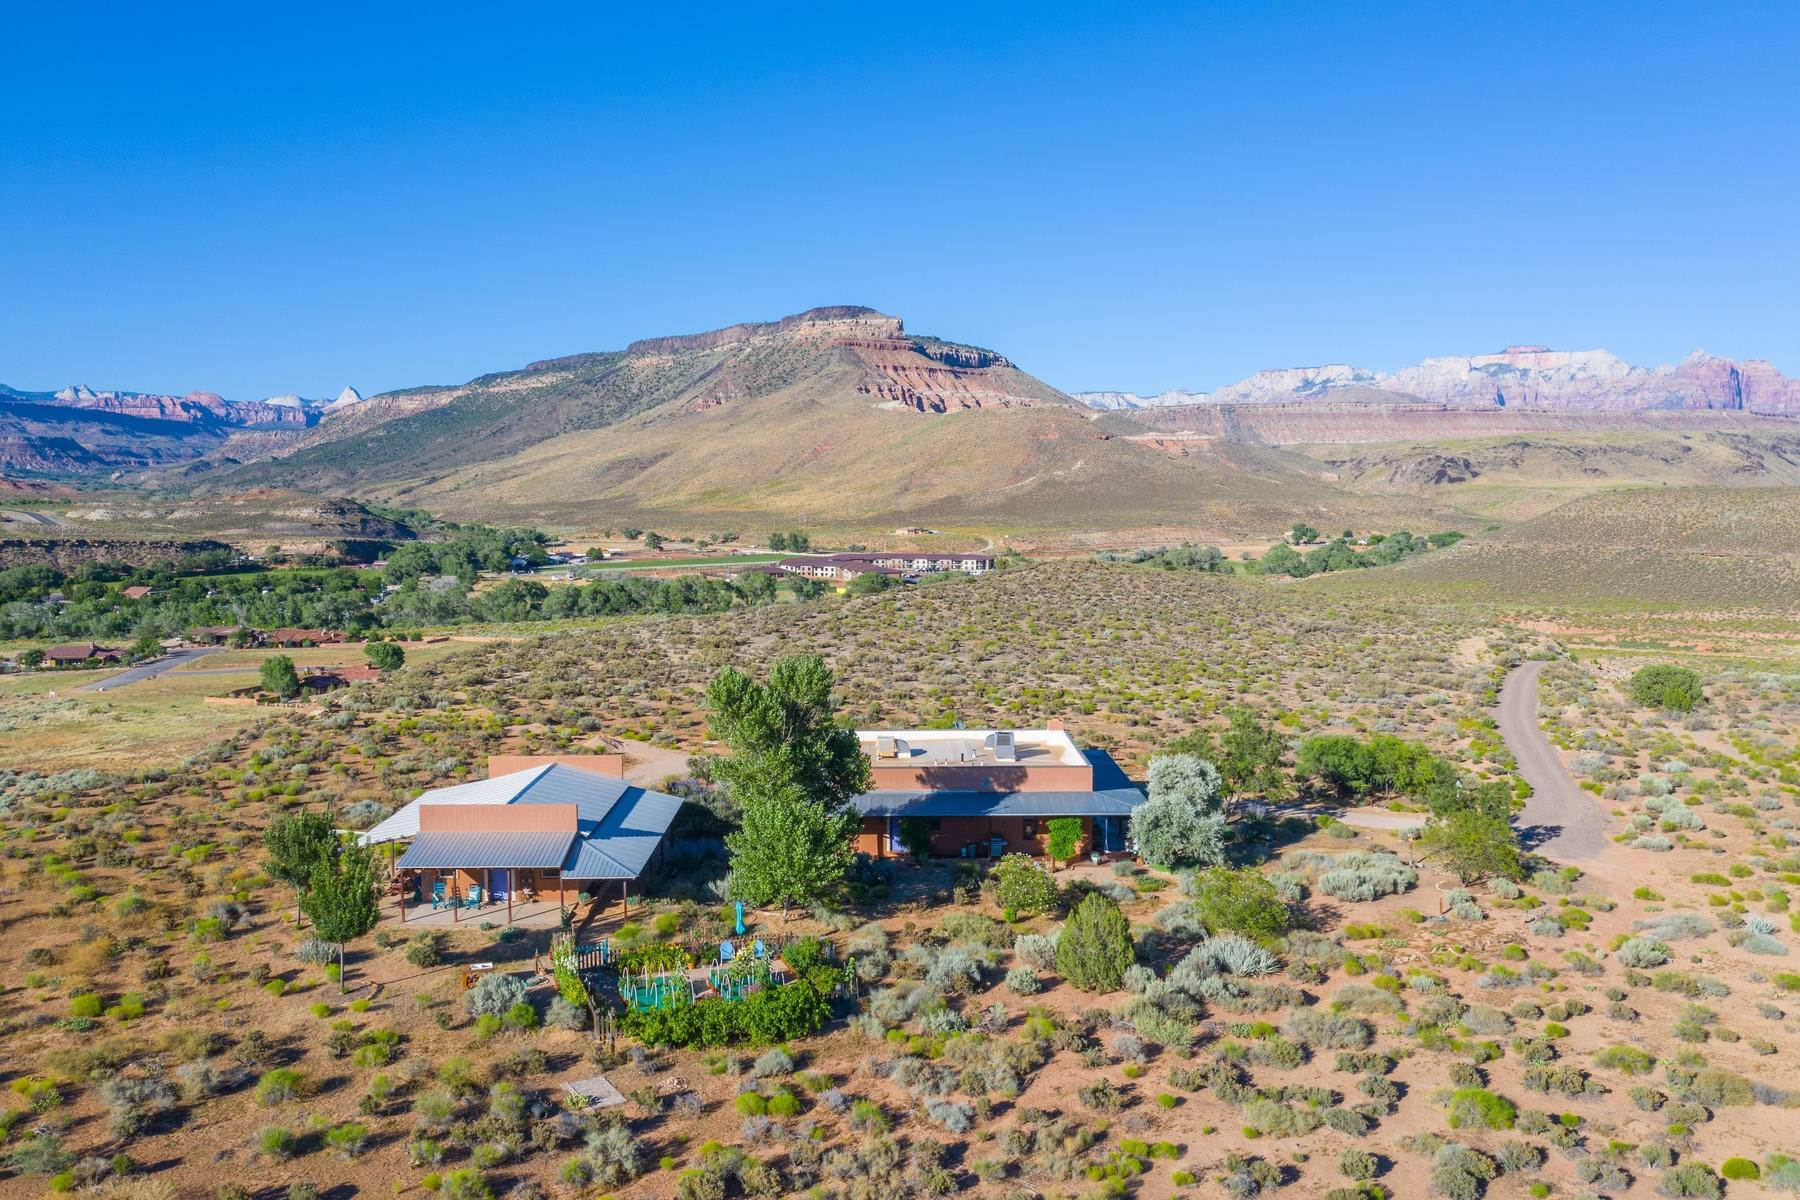 Single Family Homes for Sale at Custom Home On Private 35-Acre Mesa Just Outside Zion 265 Red Hill Lane Virgin, Utah 84779 United States